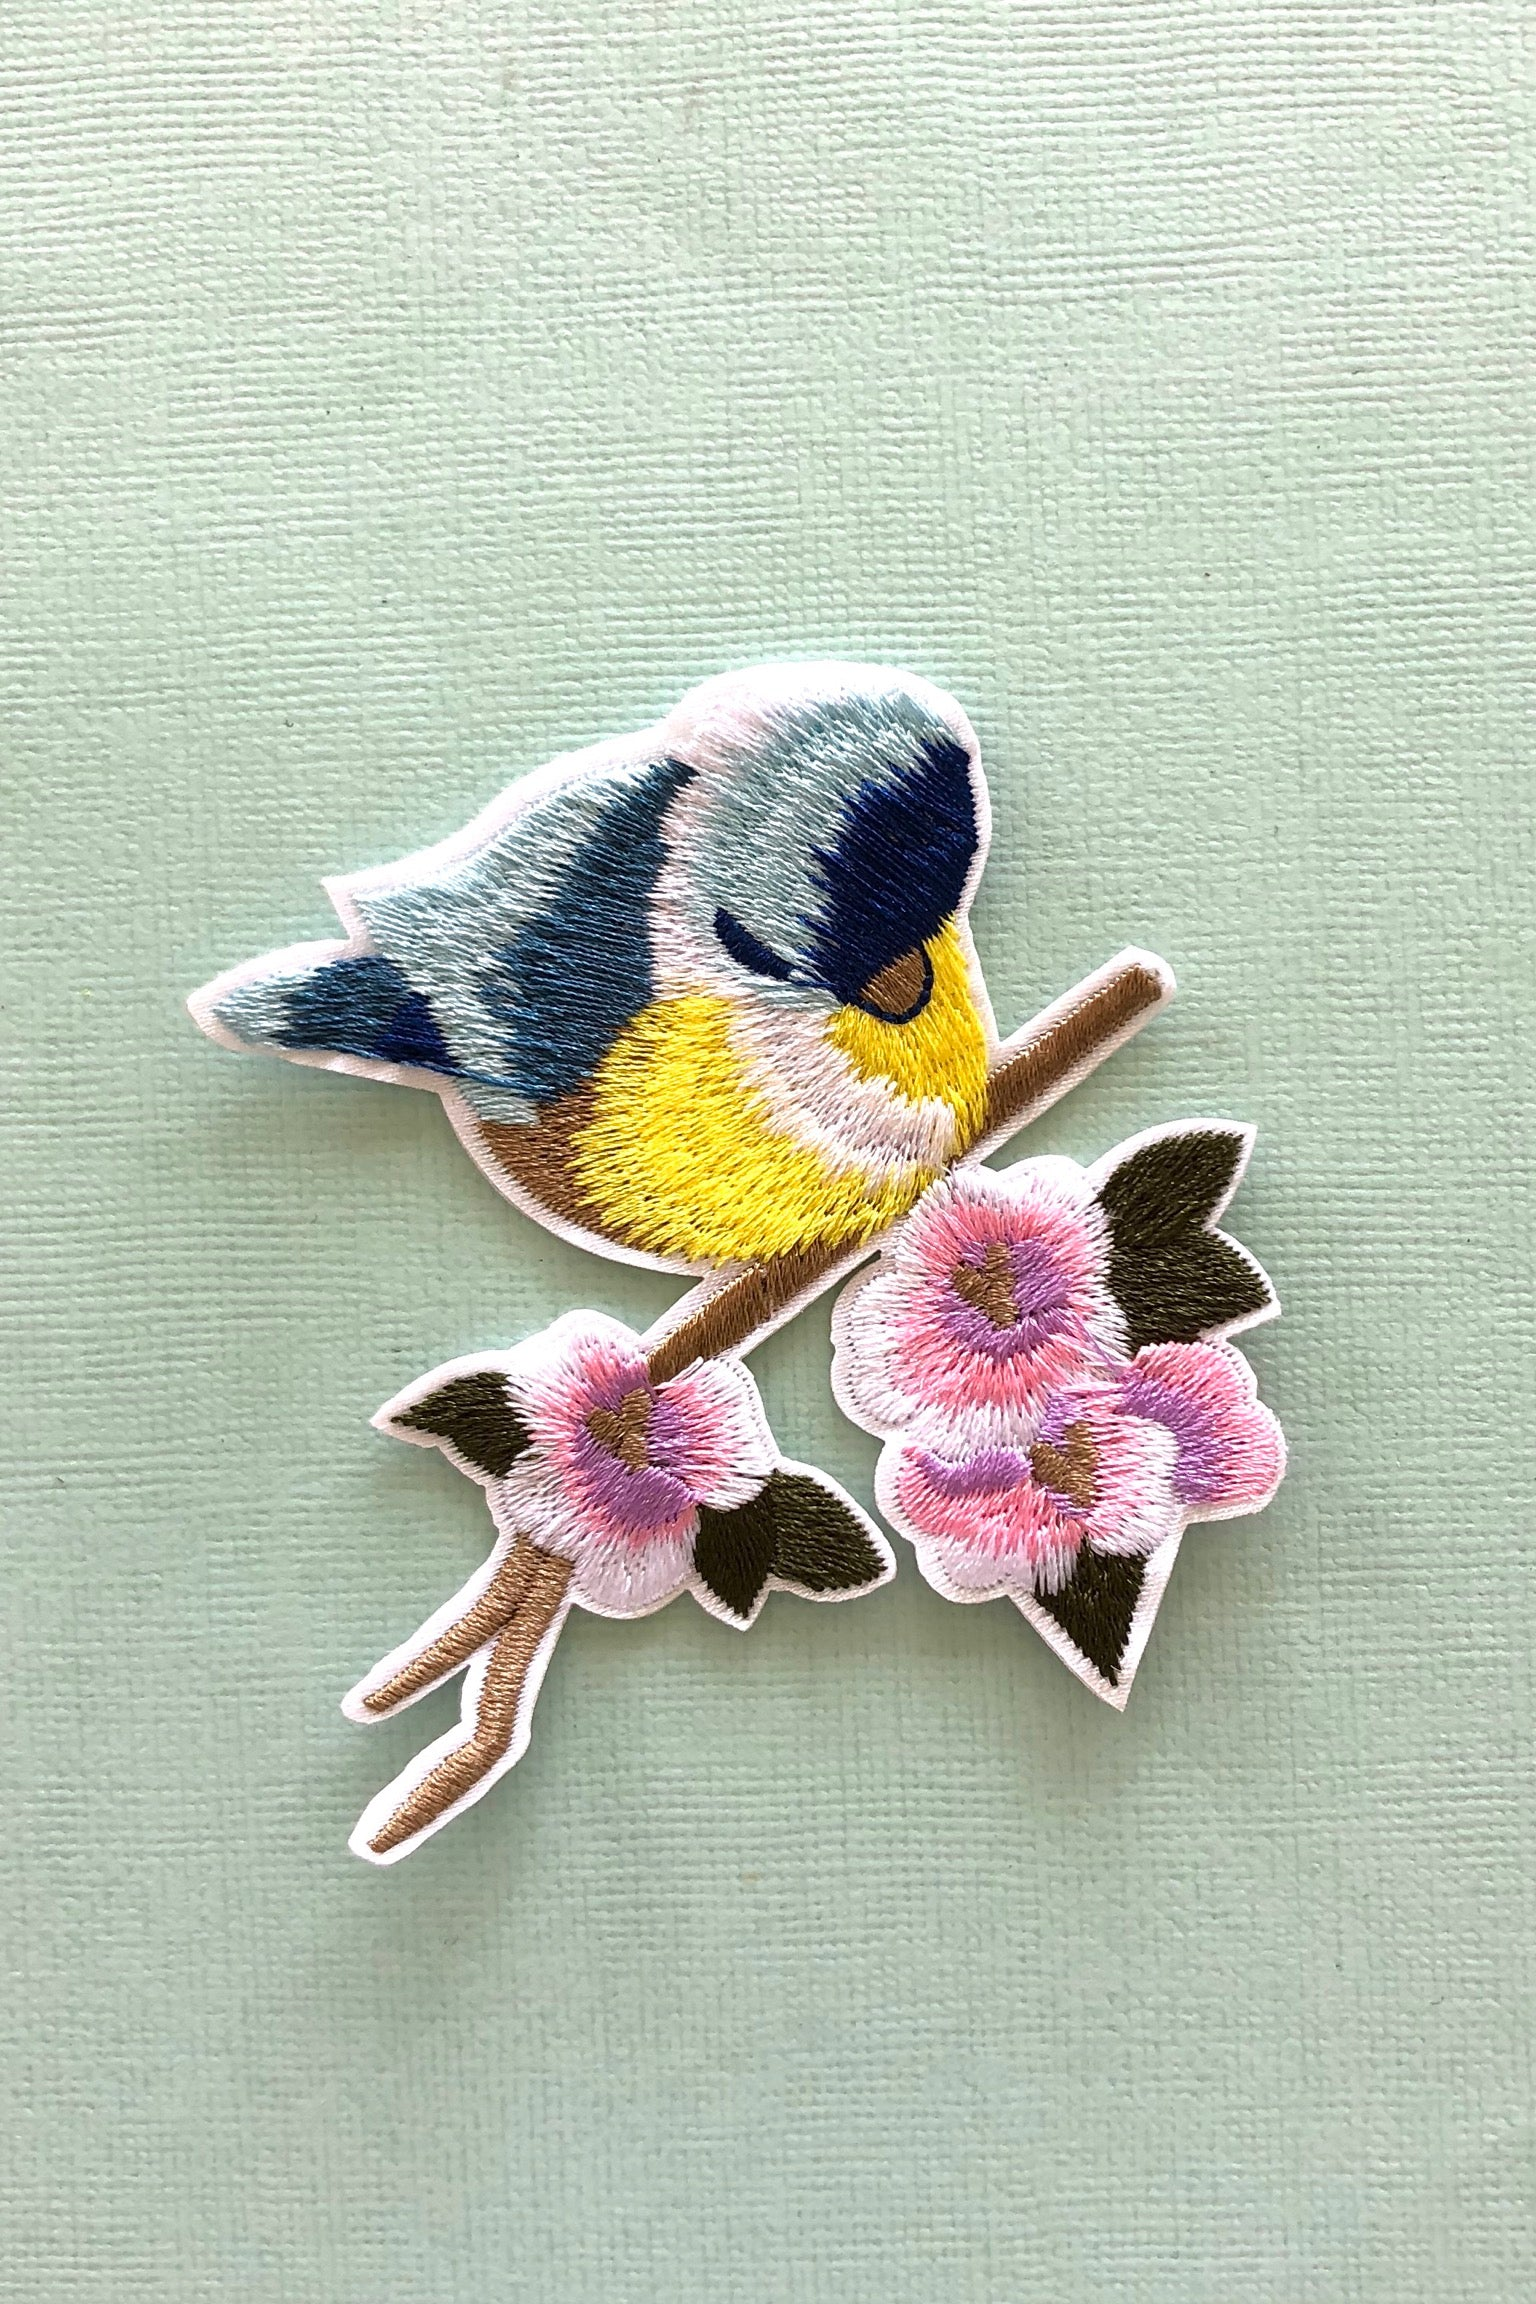 Iron on Motif Patch The Birds, cute bird patch for jeans